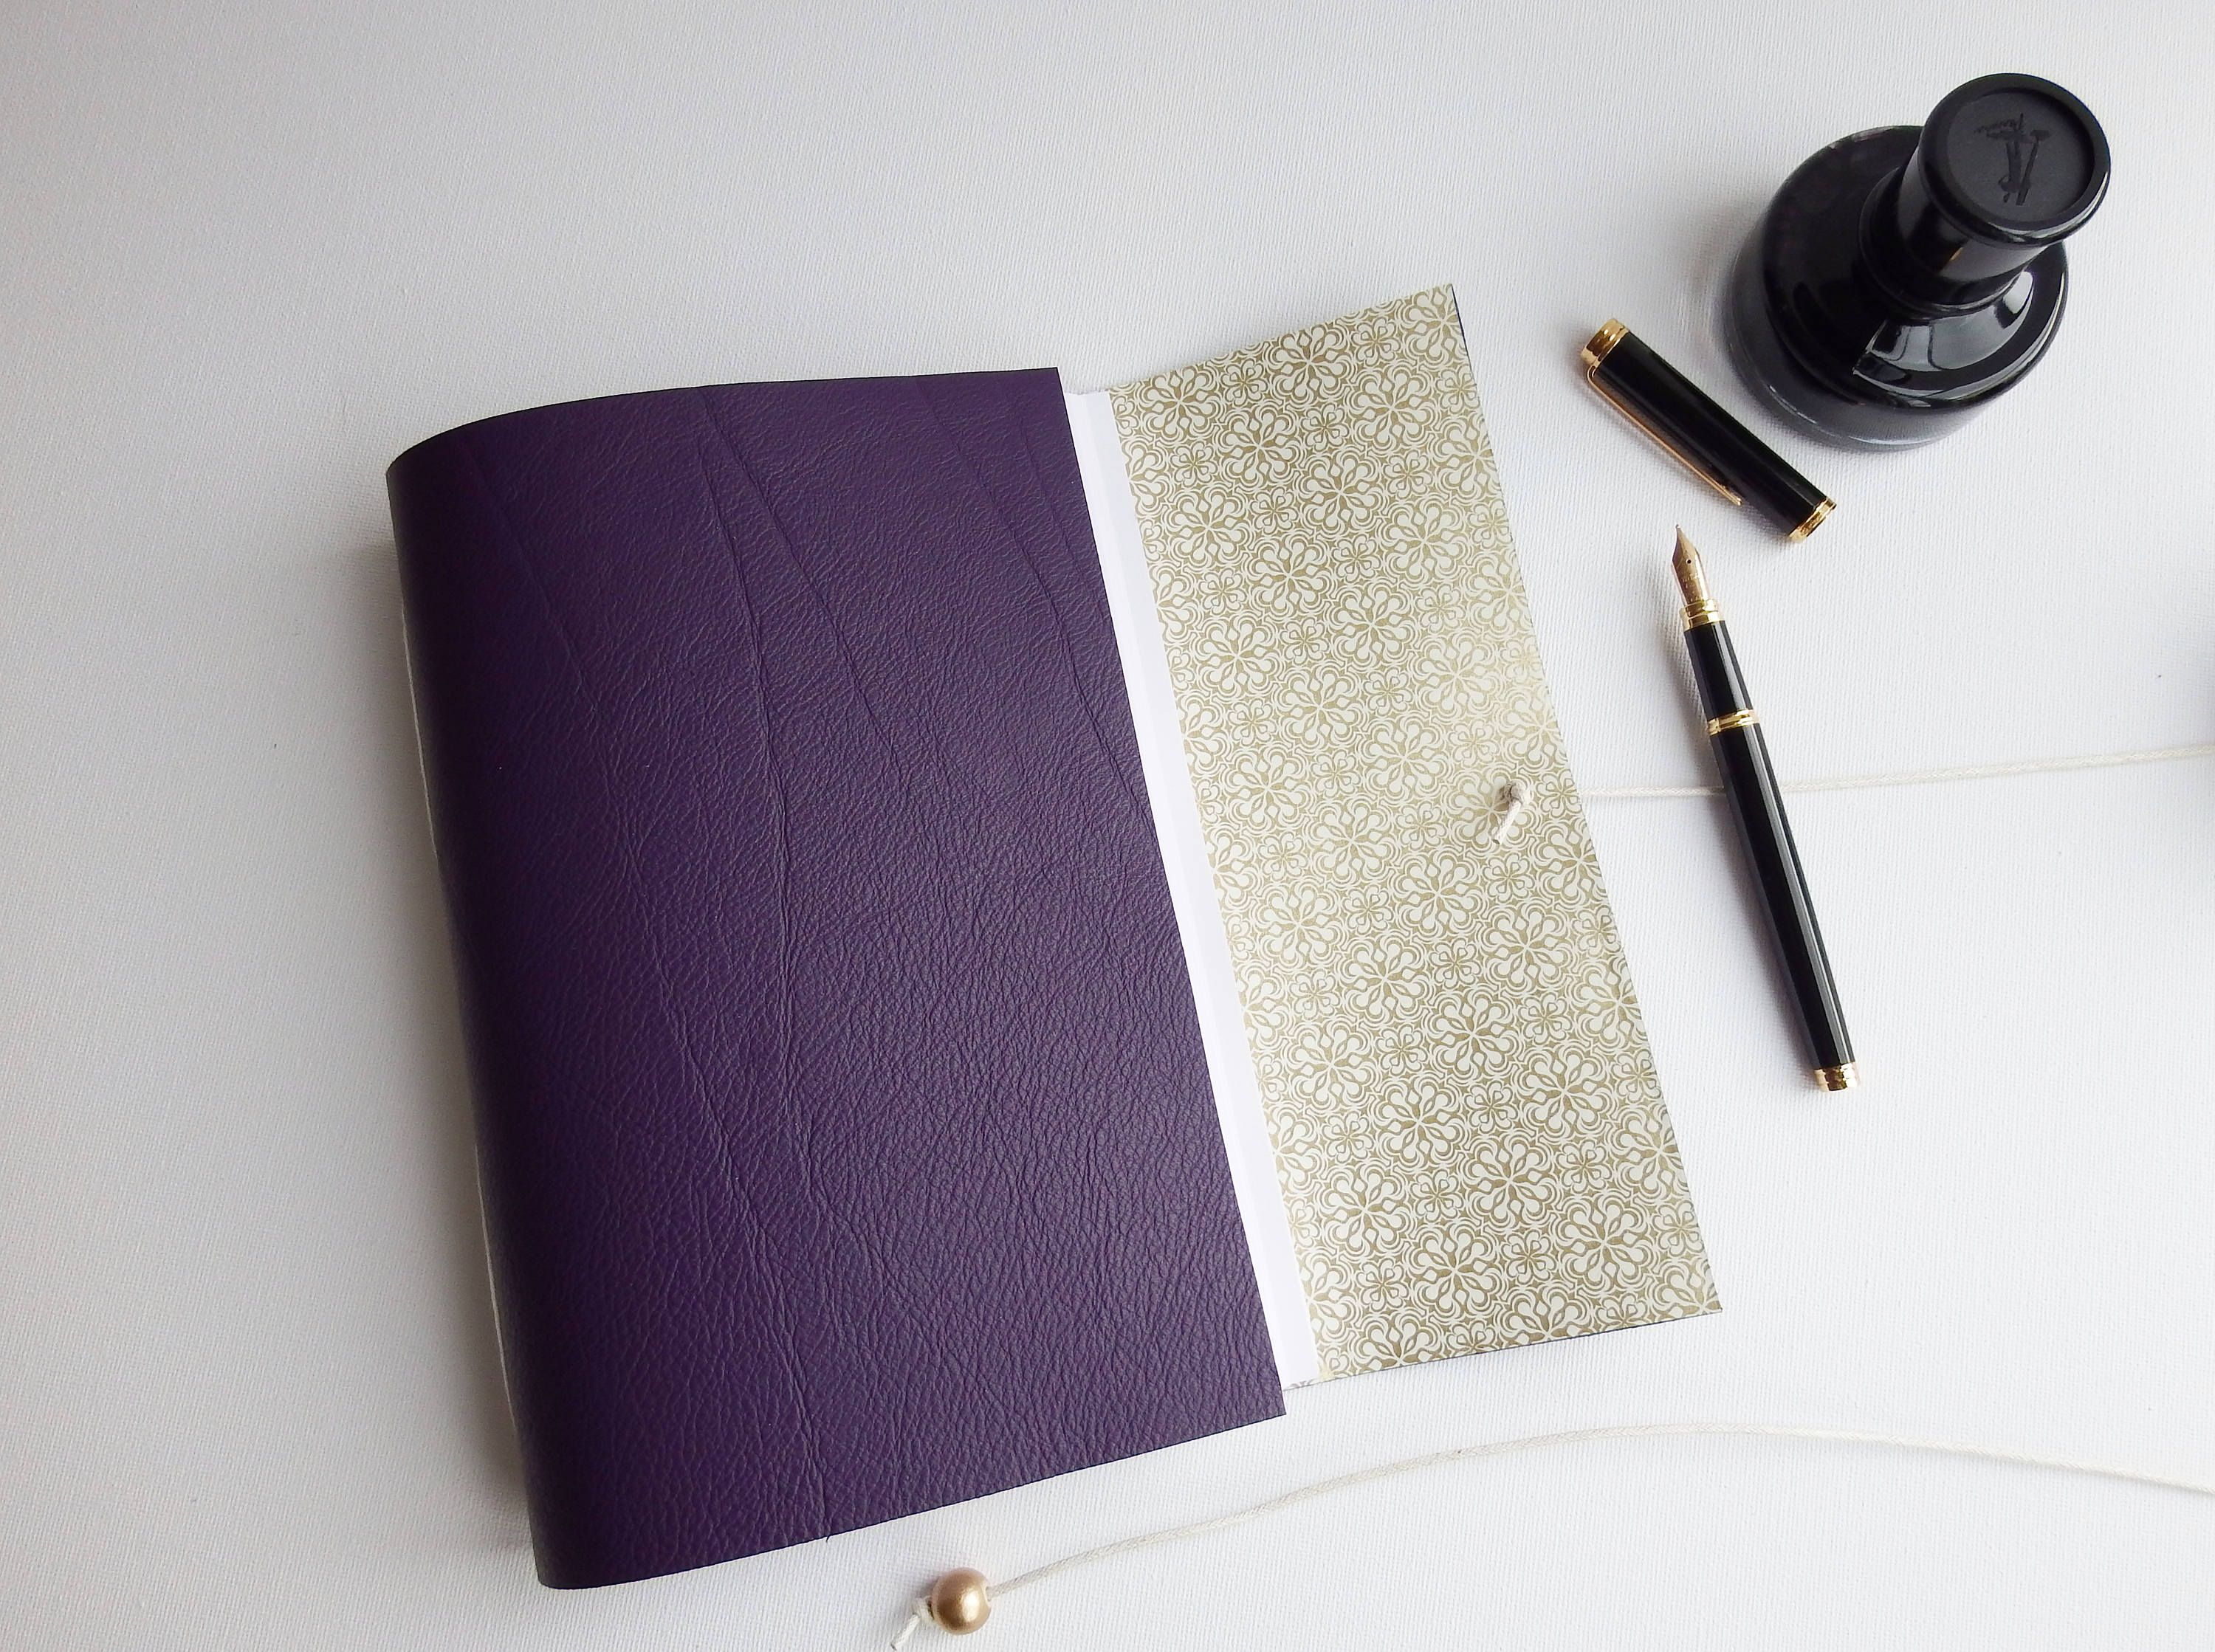 Purple Leather Wedding Journal Planner Gift Dot Grid Lined Dotted Book Bujo Blank Mindfulness